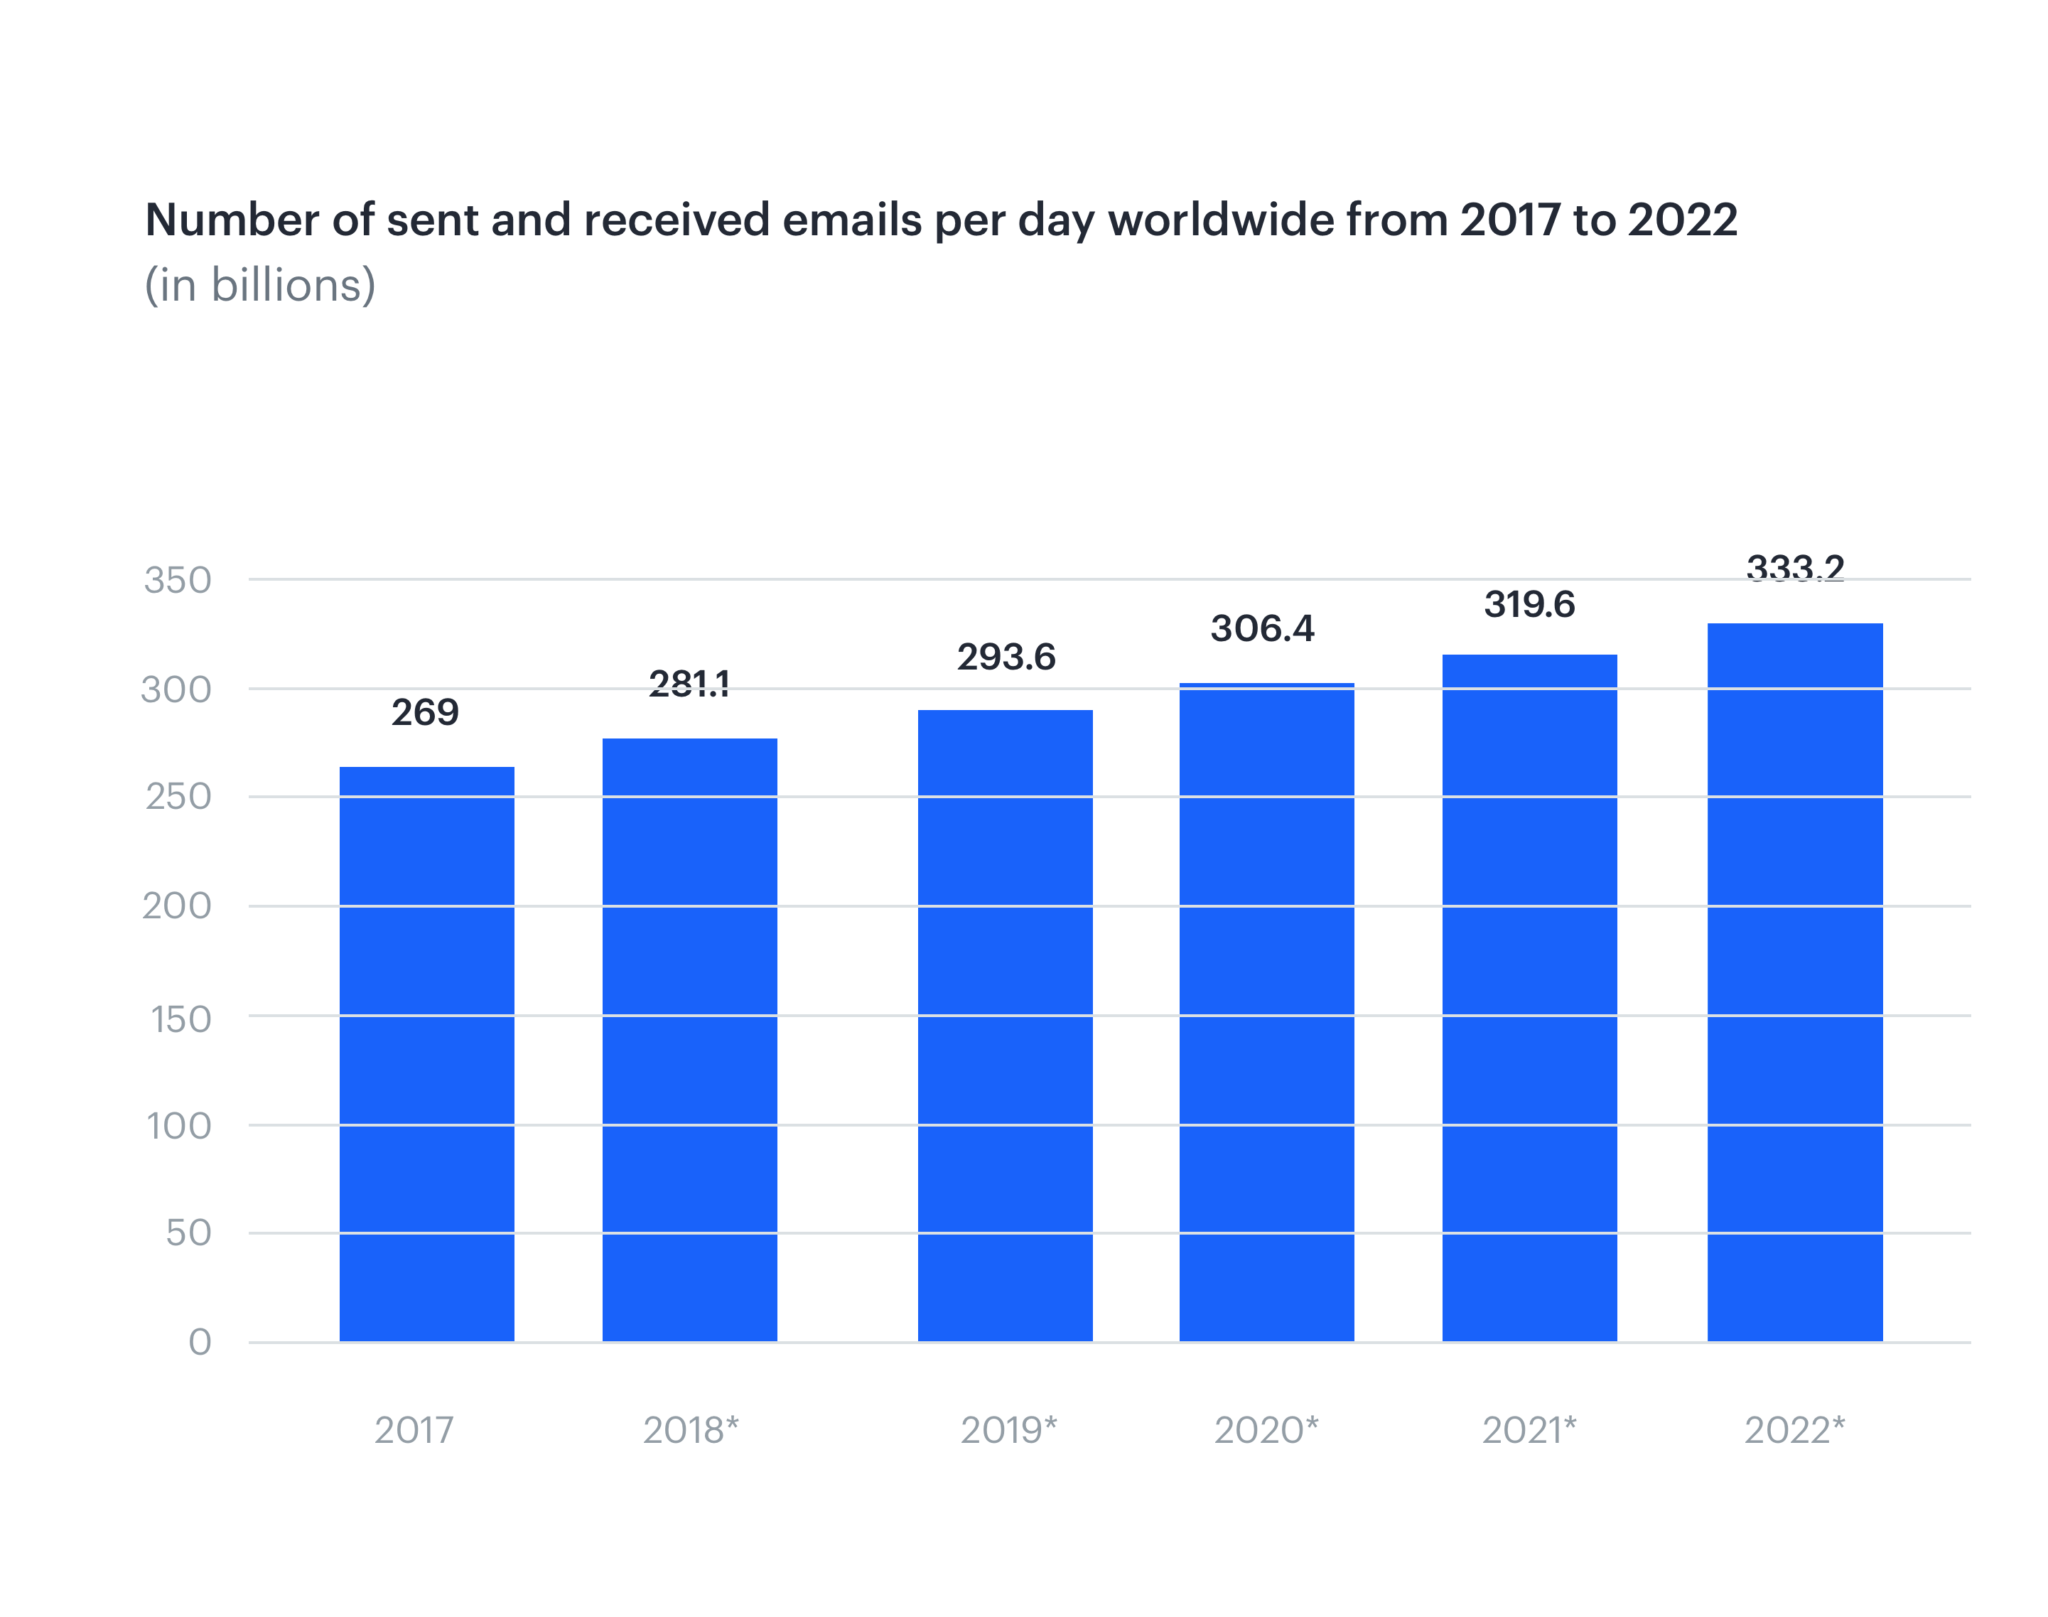 A bar chart from statista of the numer of emails sent and received worldwide between 2017-2022 in billions.